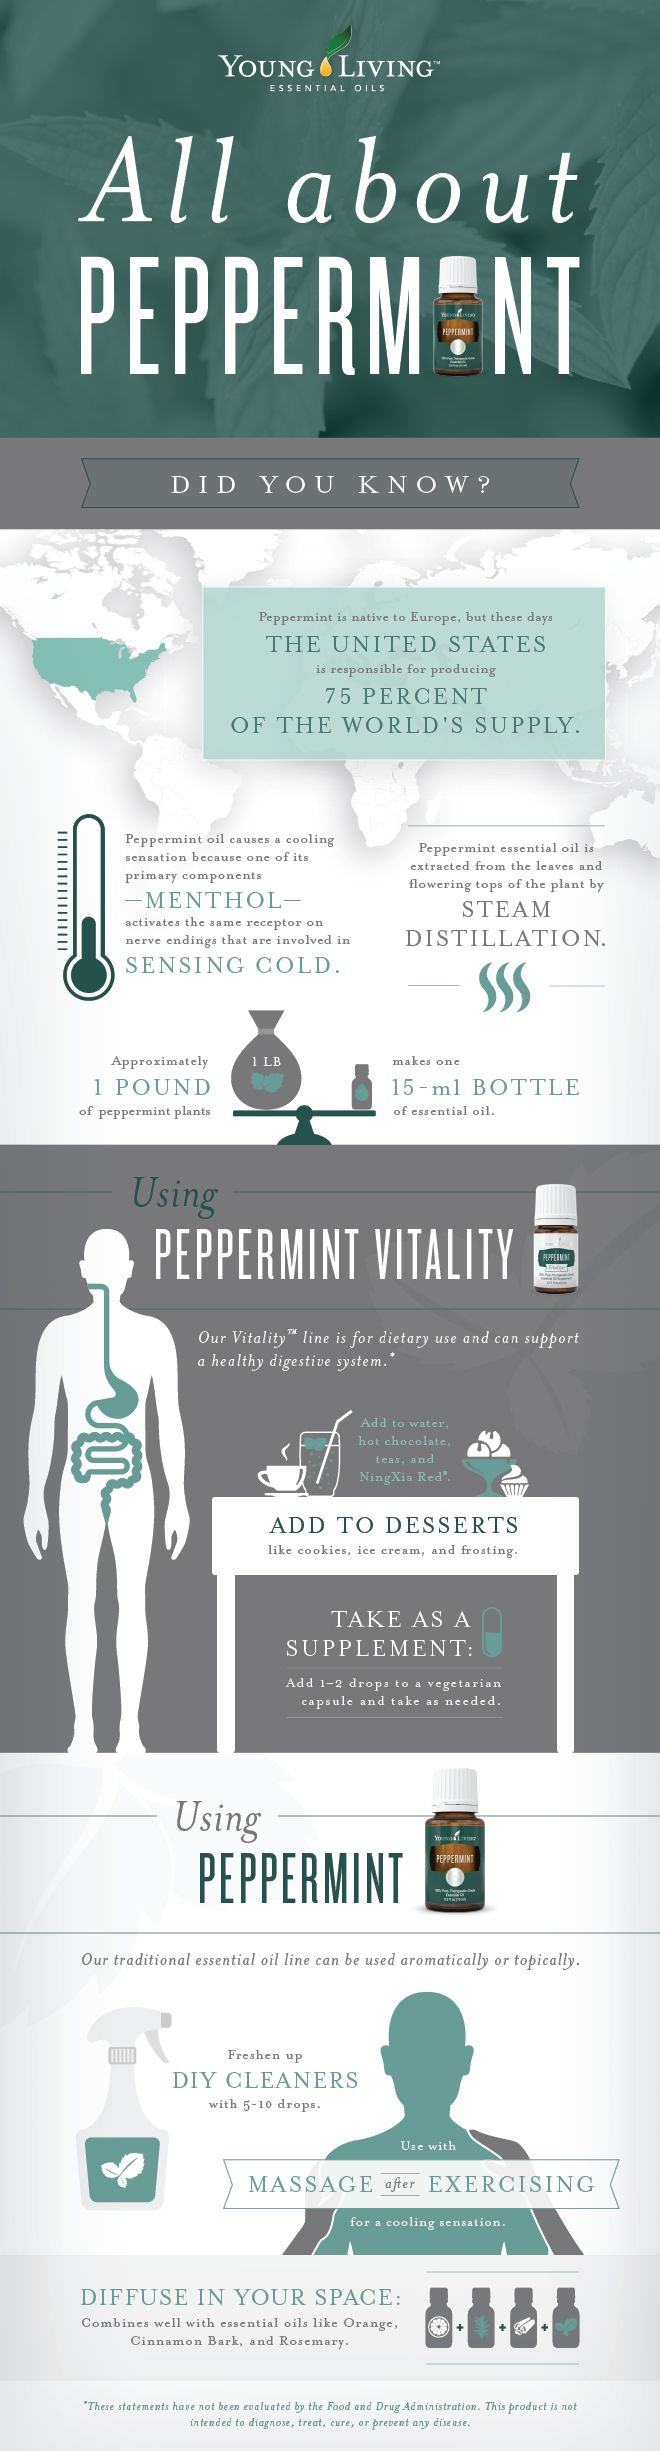 Young Living Peppermint Essential Oil and Peppermint Vitality Essential Oil | WWW.THESAVVYOILER.COM